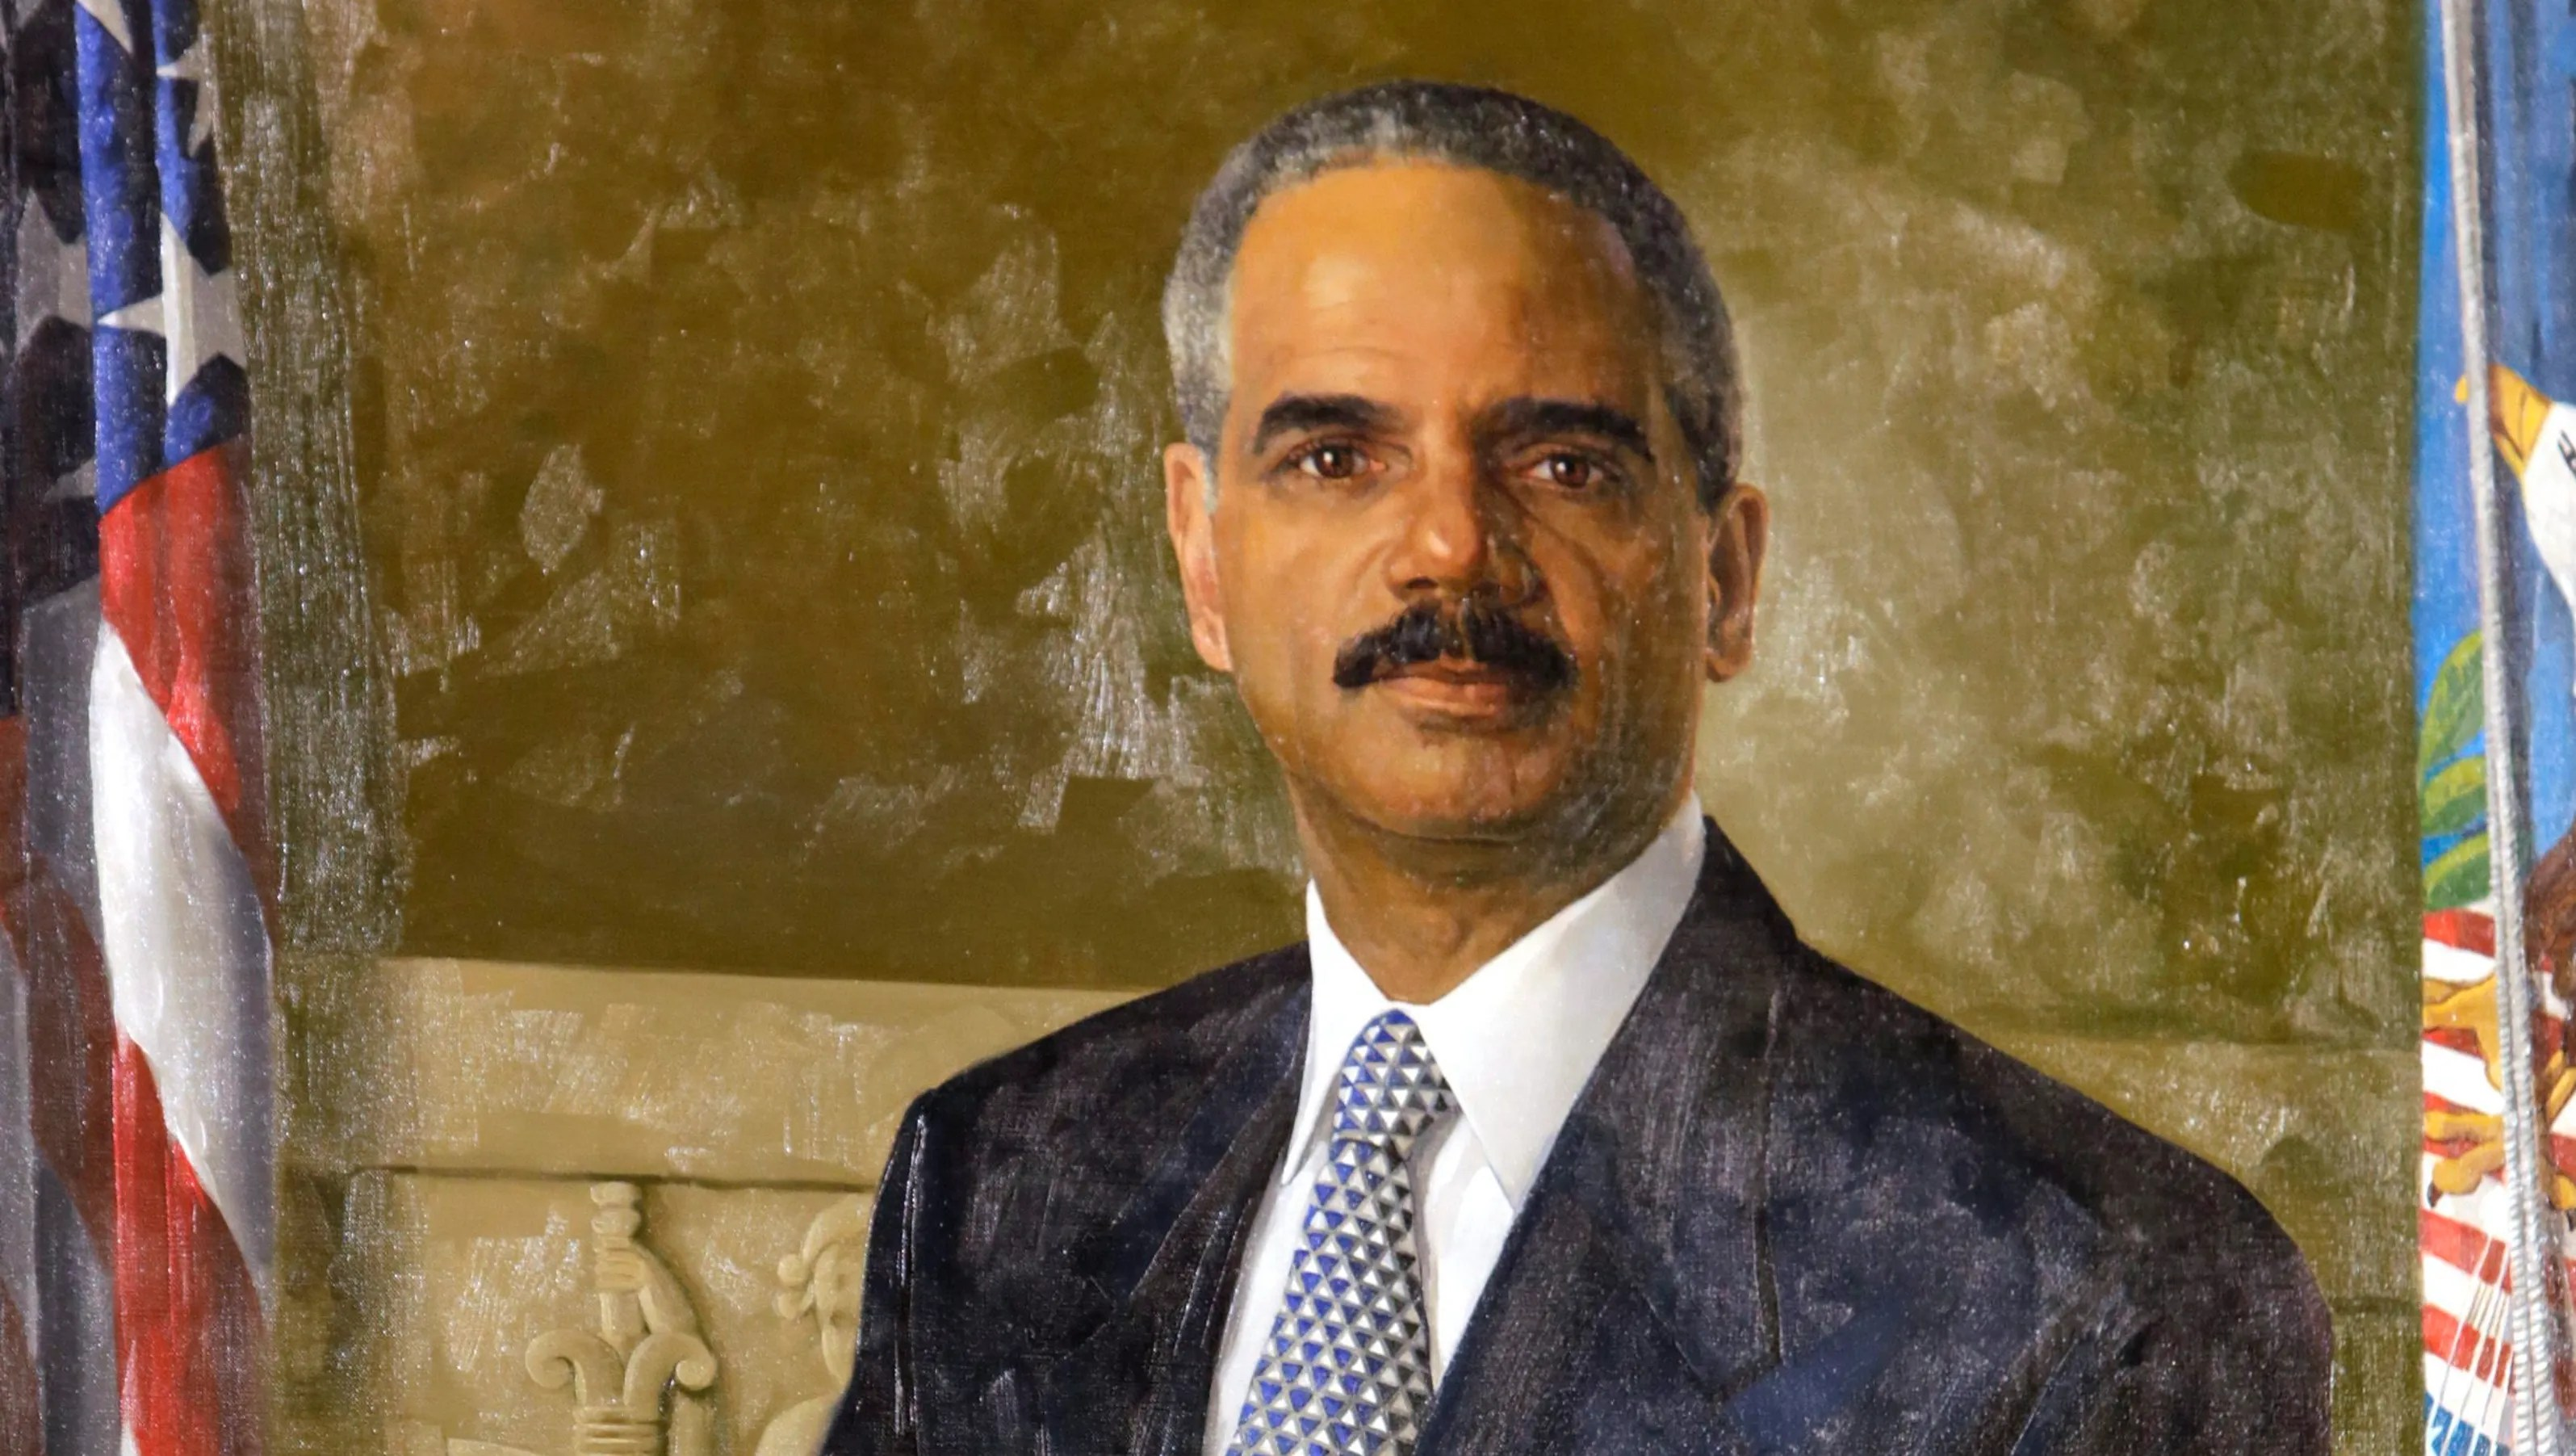 Holder says goodbye to being attorney general